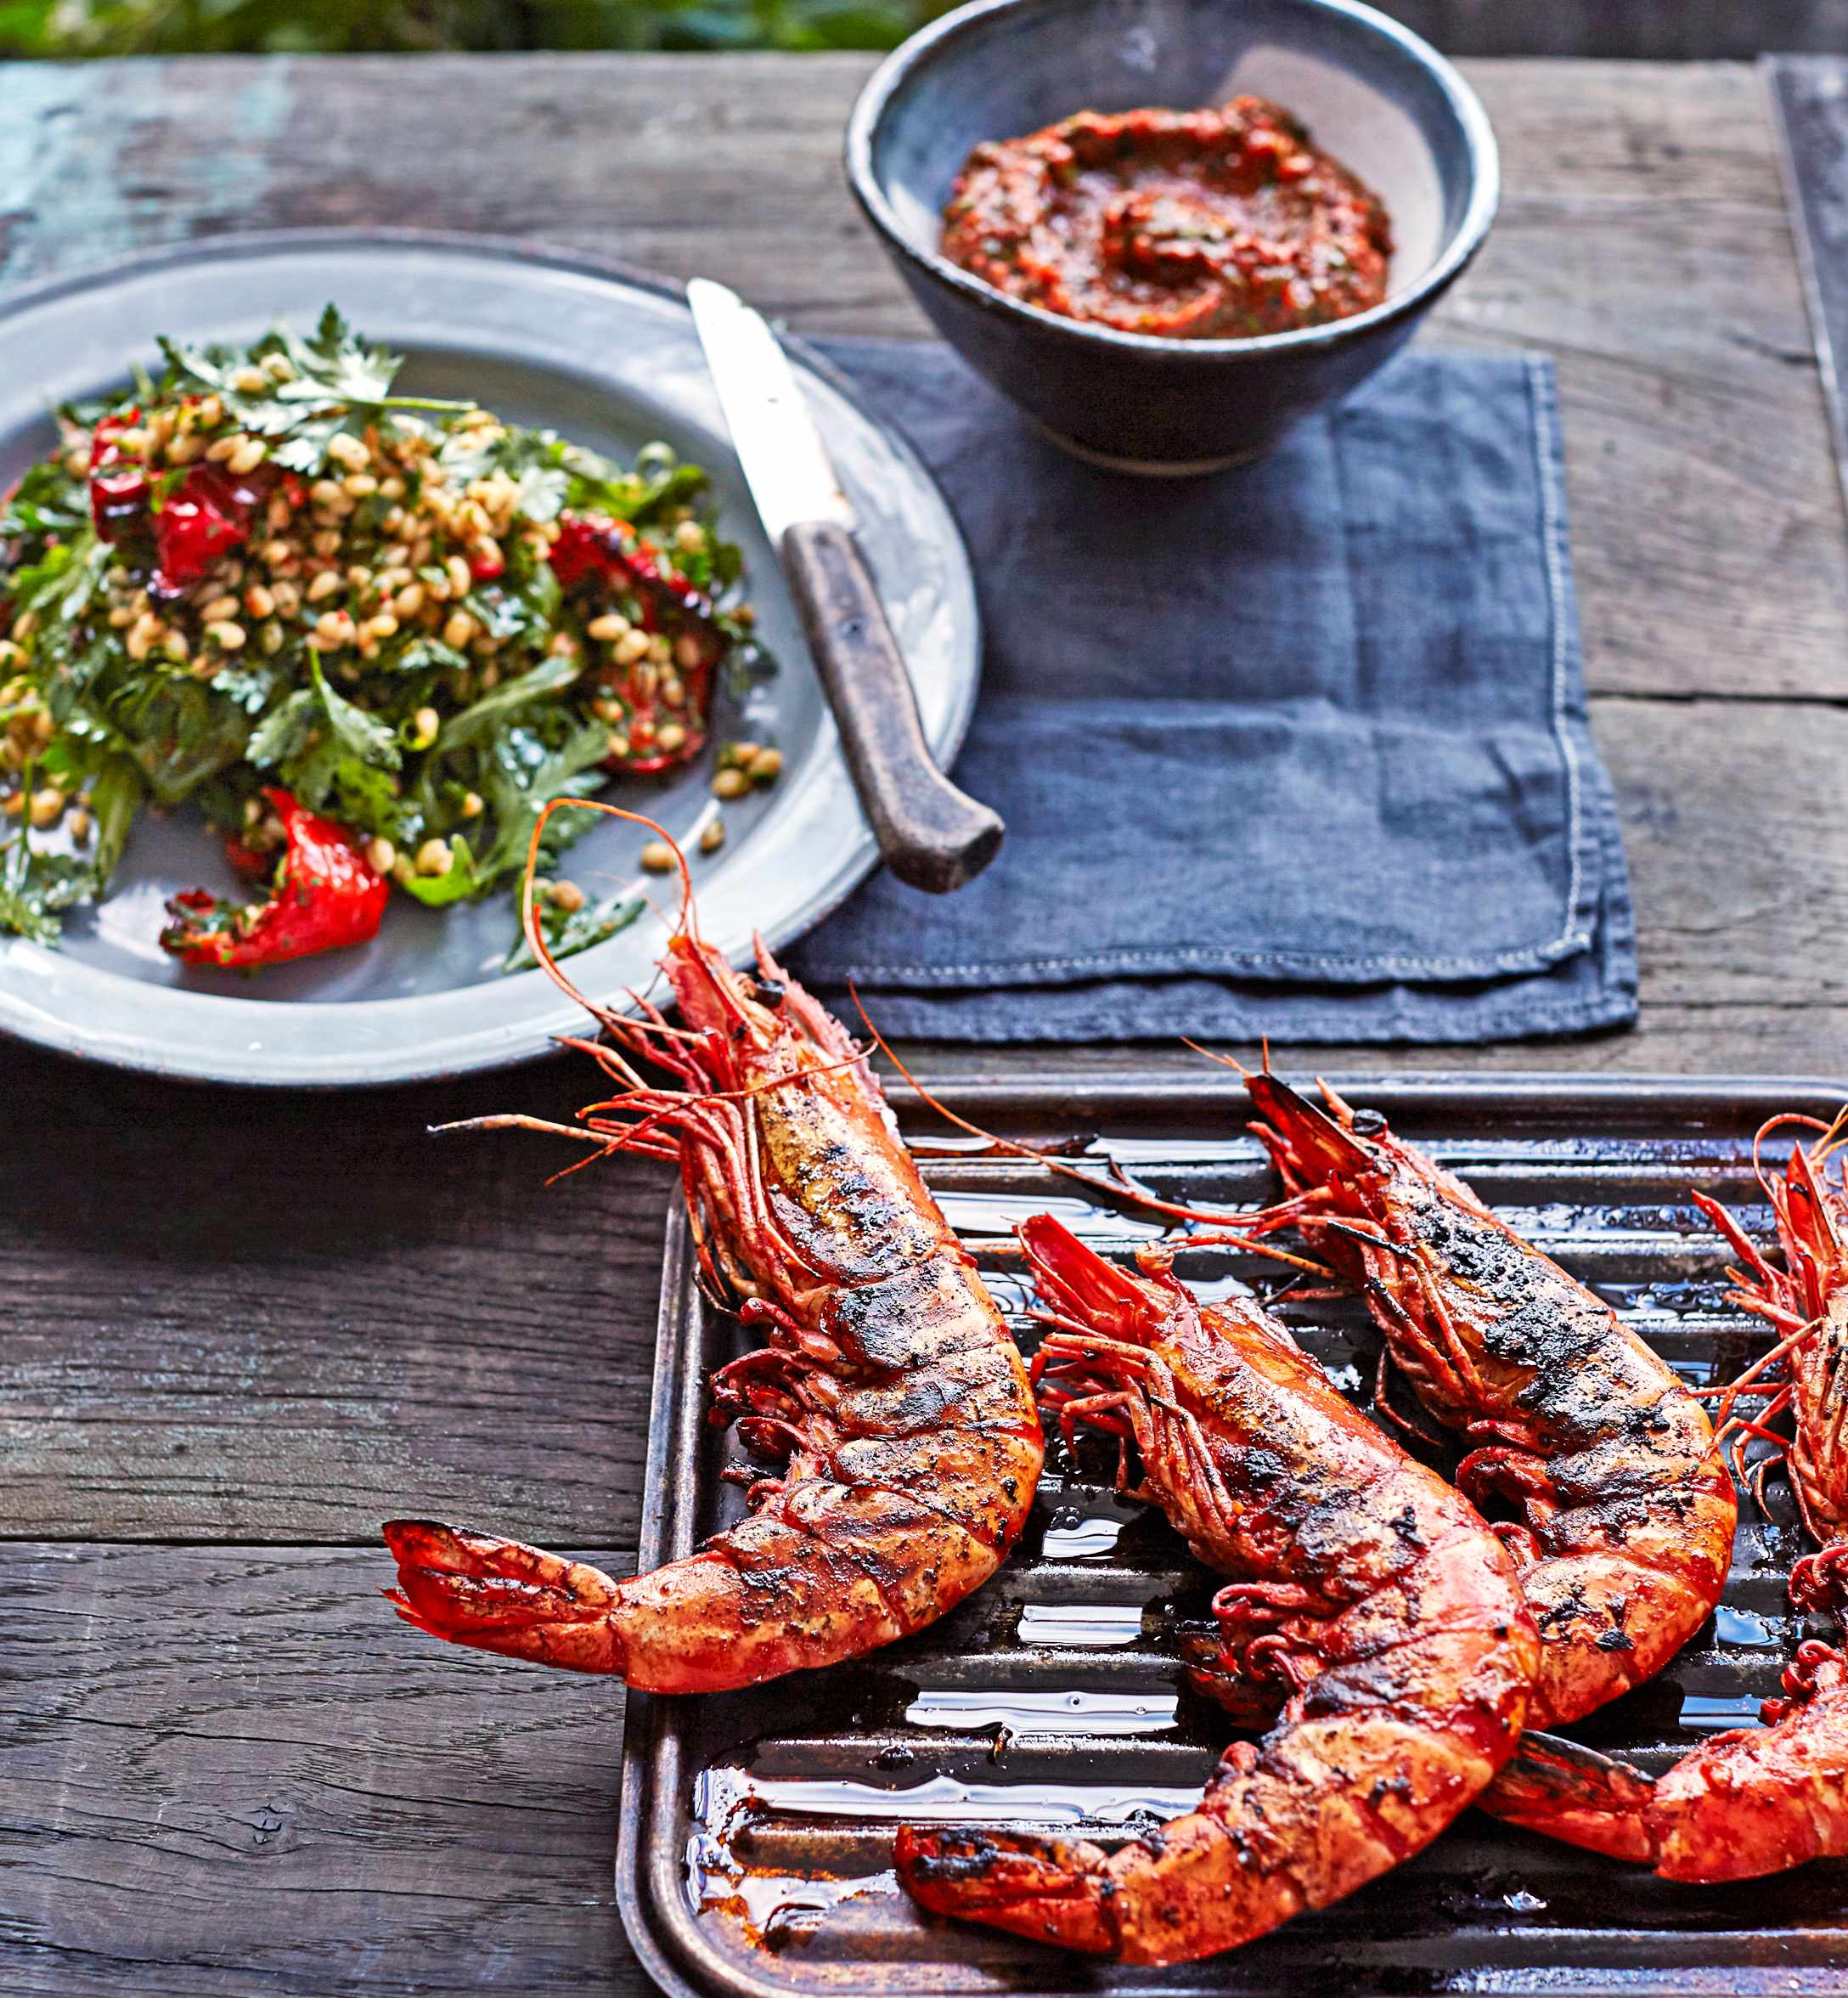 Roasted Red Pepper, Pearl Barley and BBQ Prawns